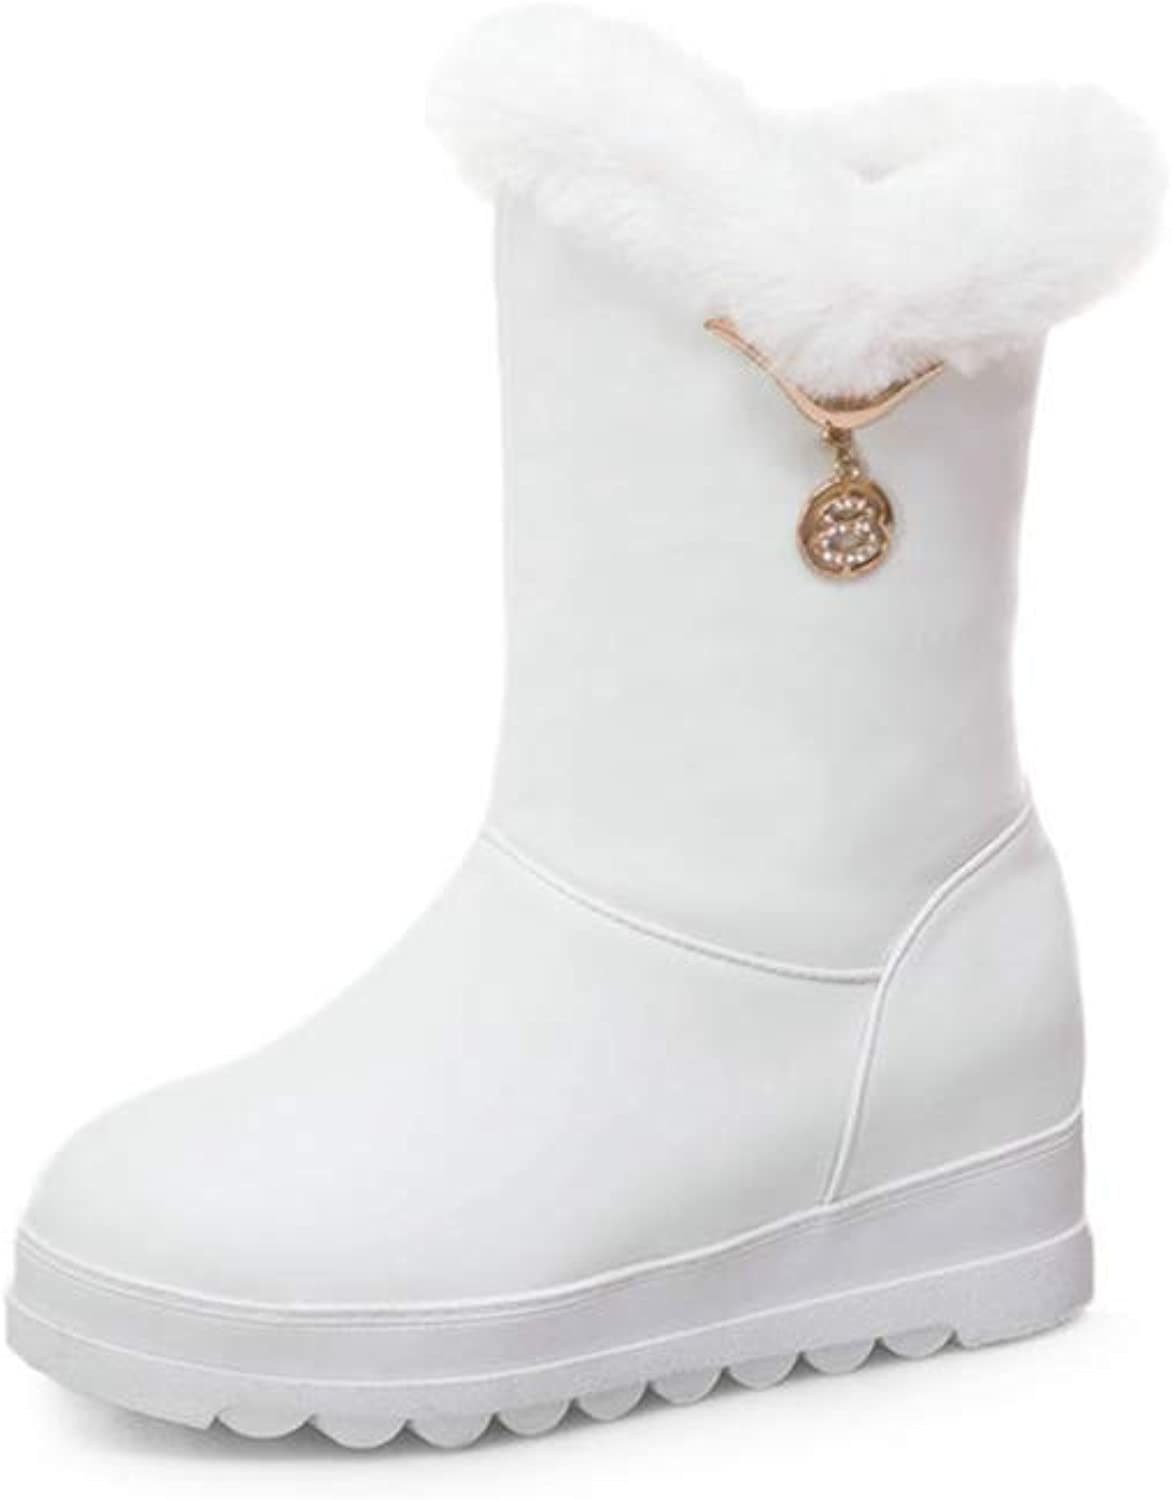 GIY Women Non-Slip Waterproof Ankle Boots Platform Wedges Heel Snow Boots Thick Fur Boots Inner Heightening shoes